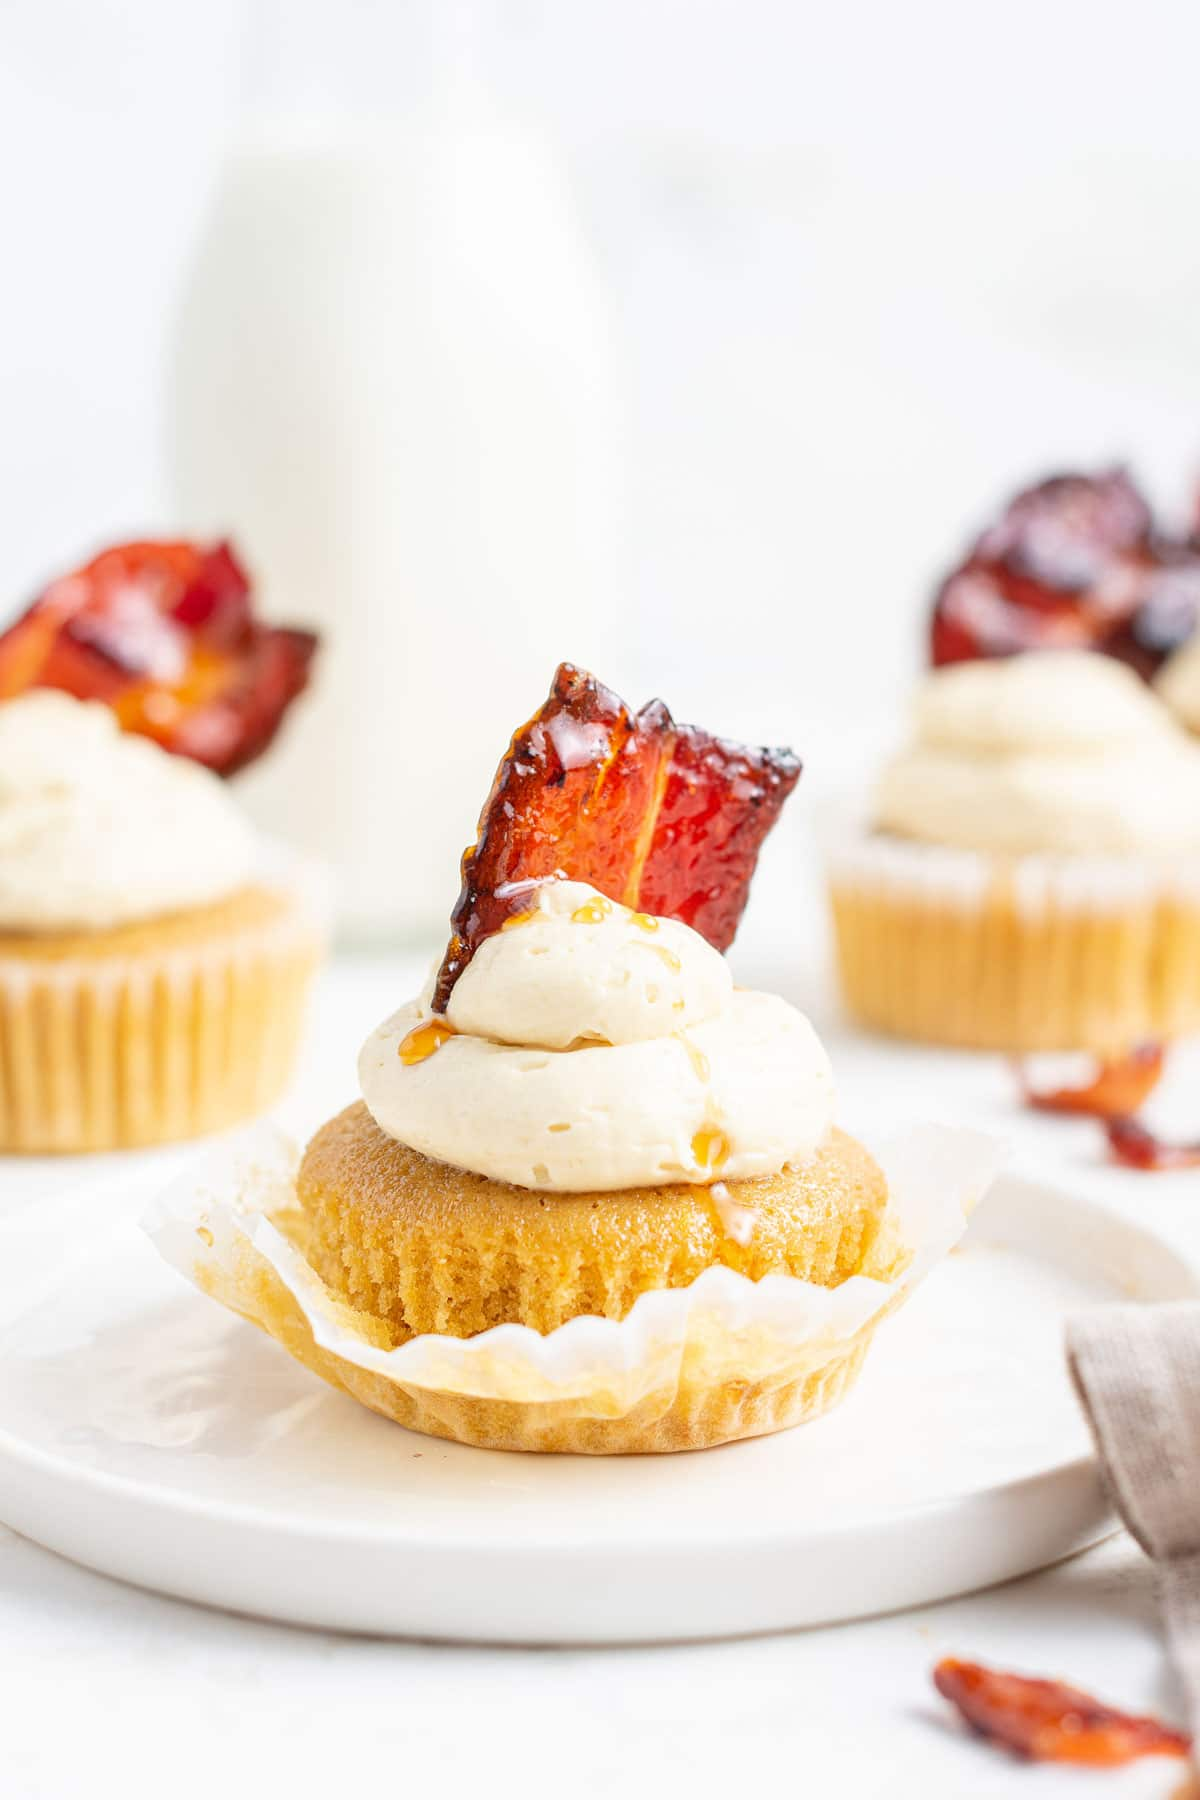 Bacon on top of maple cupcakes.